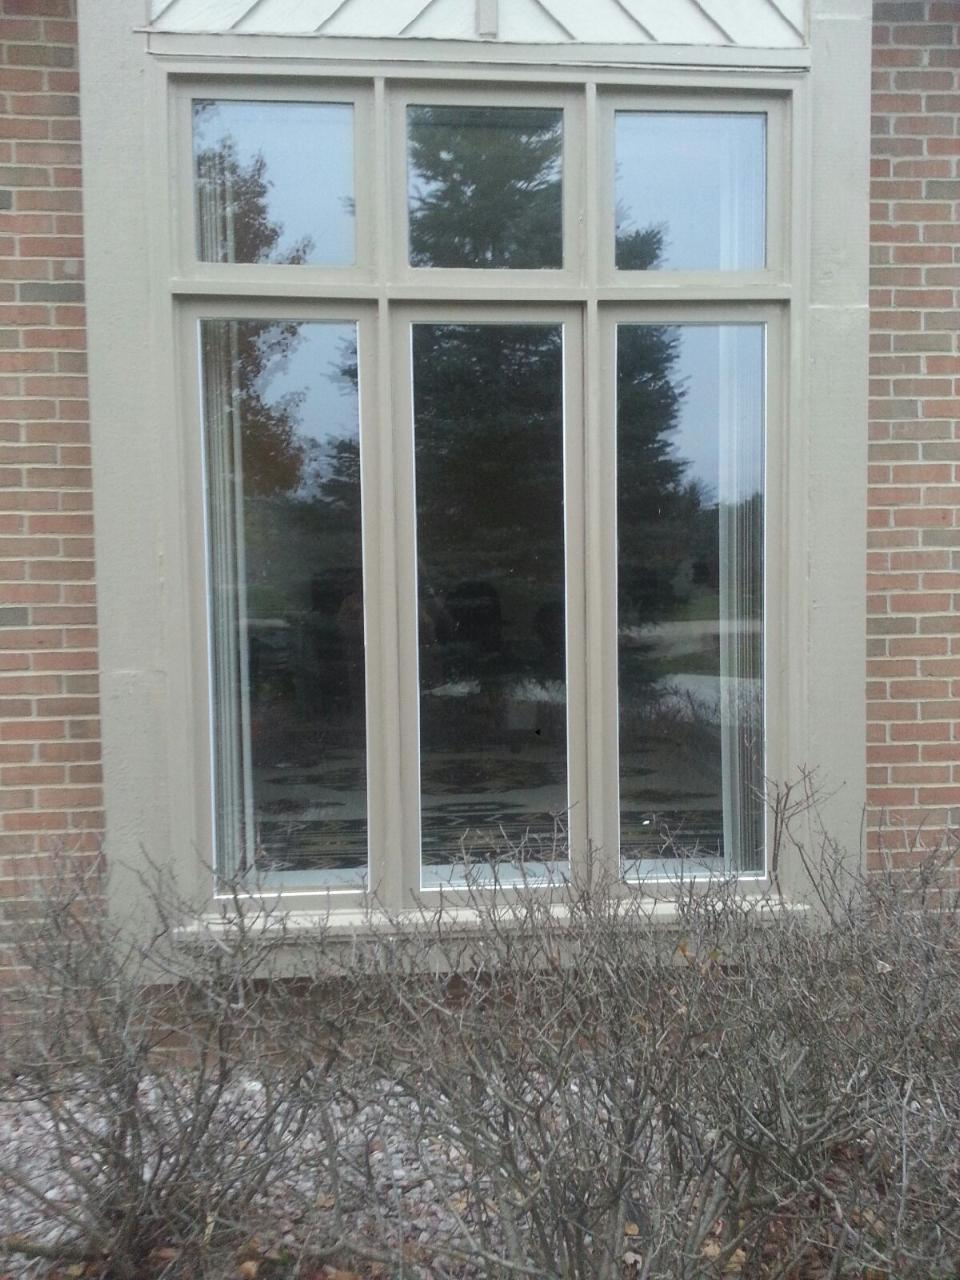 Aruba window repair and home improvement in sterling for House window replacement